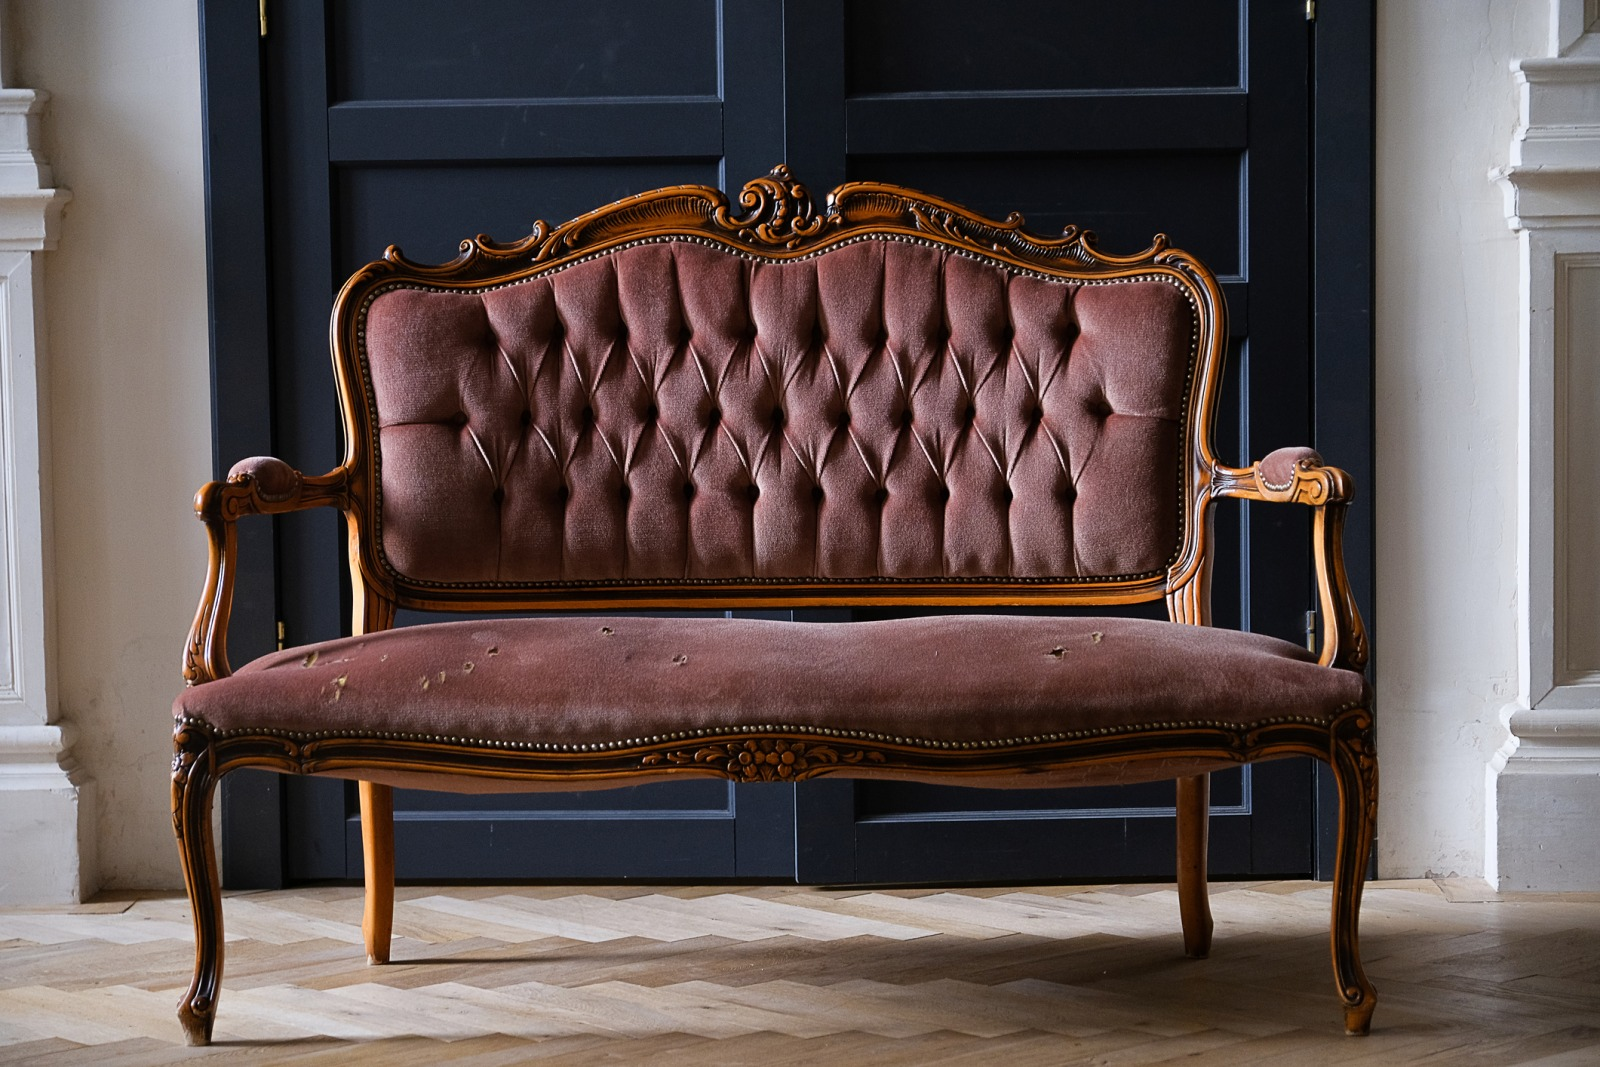 Sell Furniture In NYC: Where To Sell Used & Vintage Pieces | StreetEasy